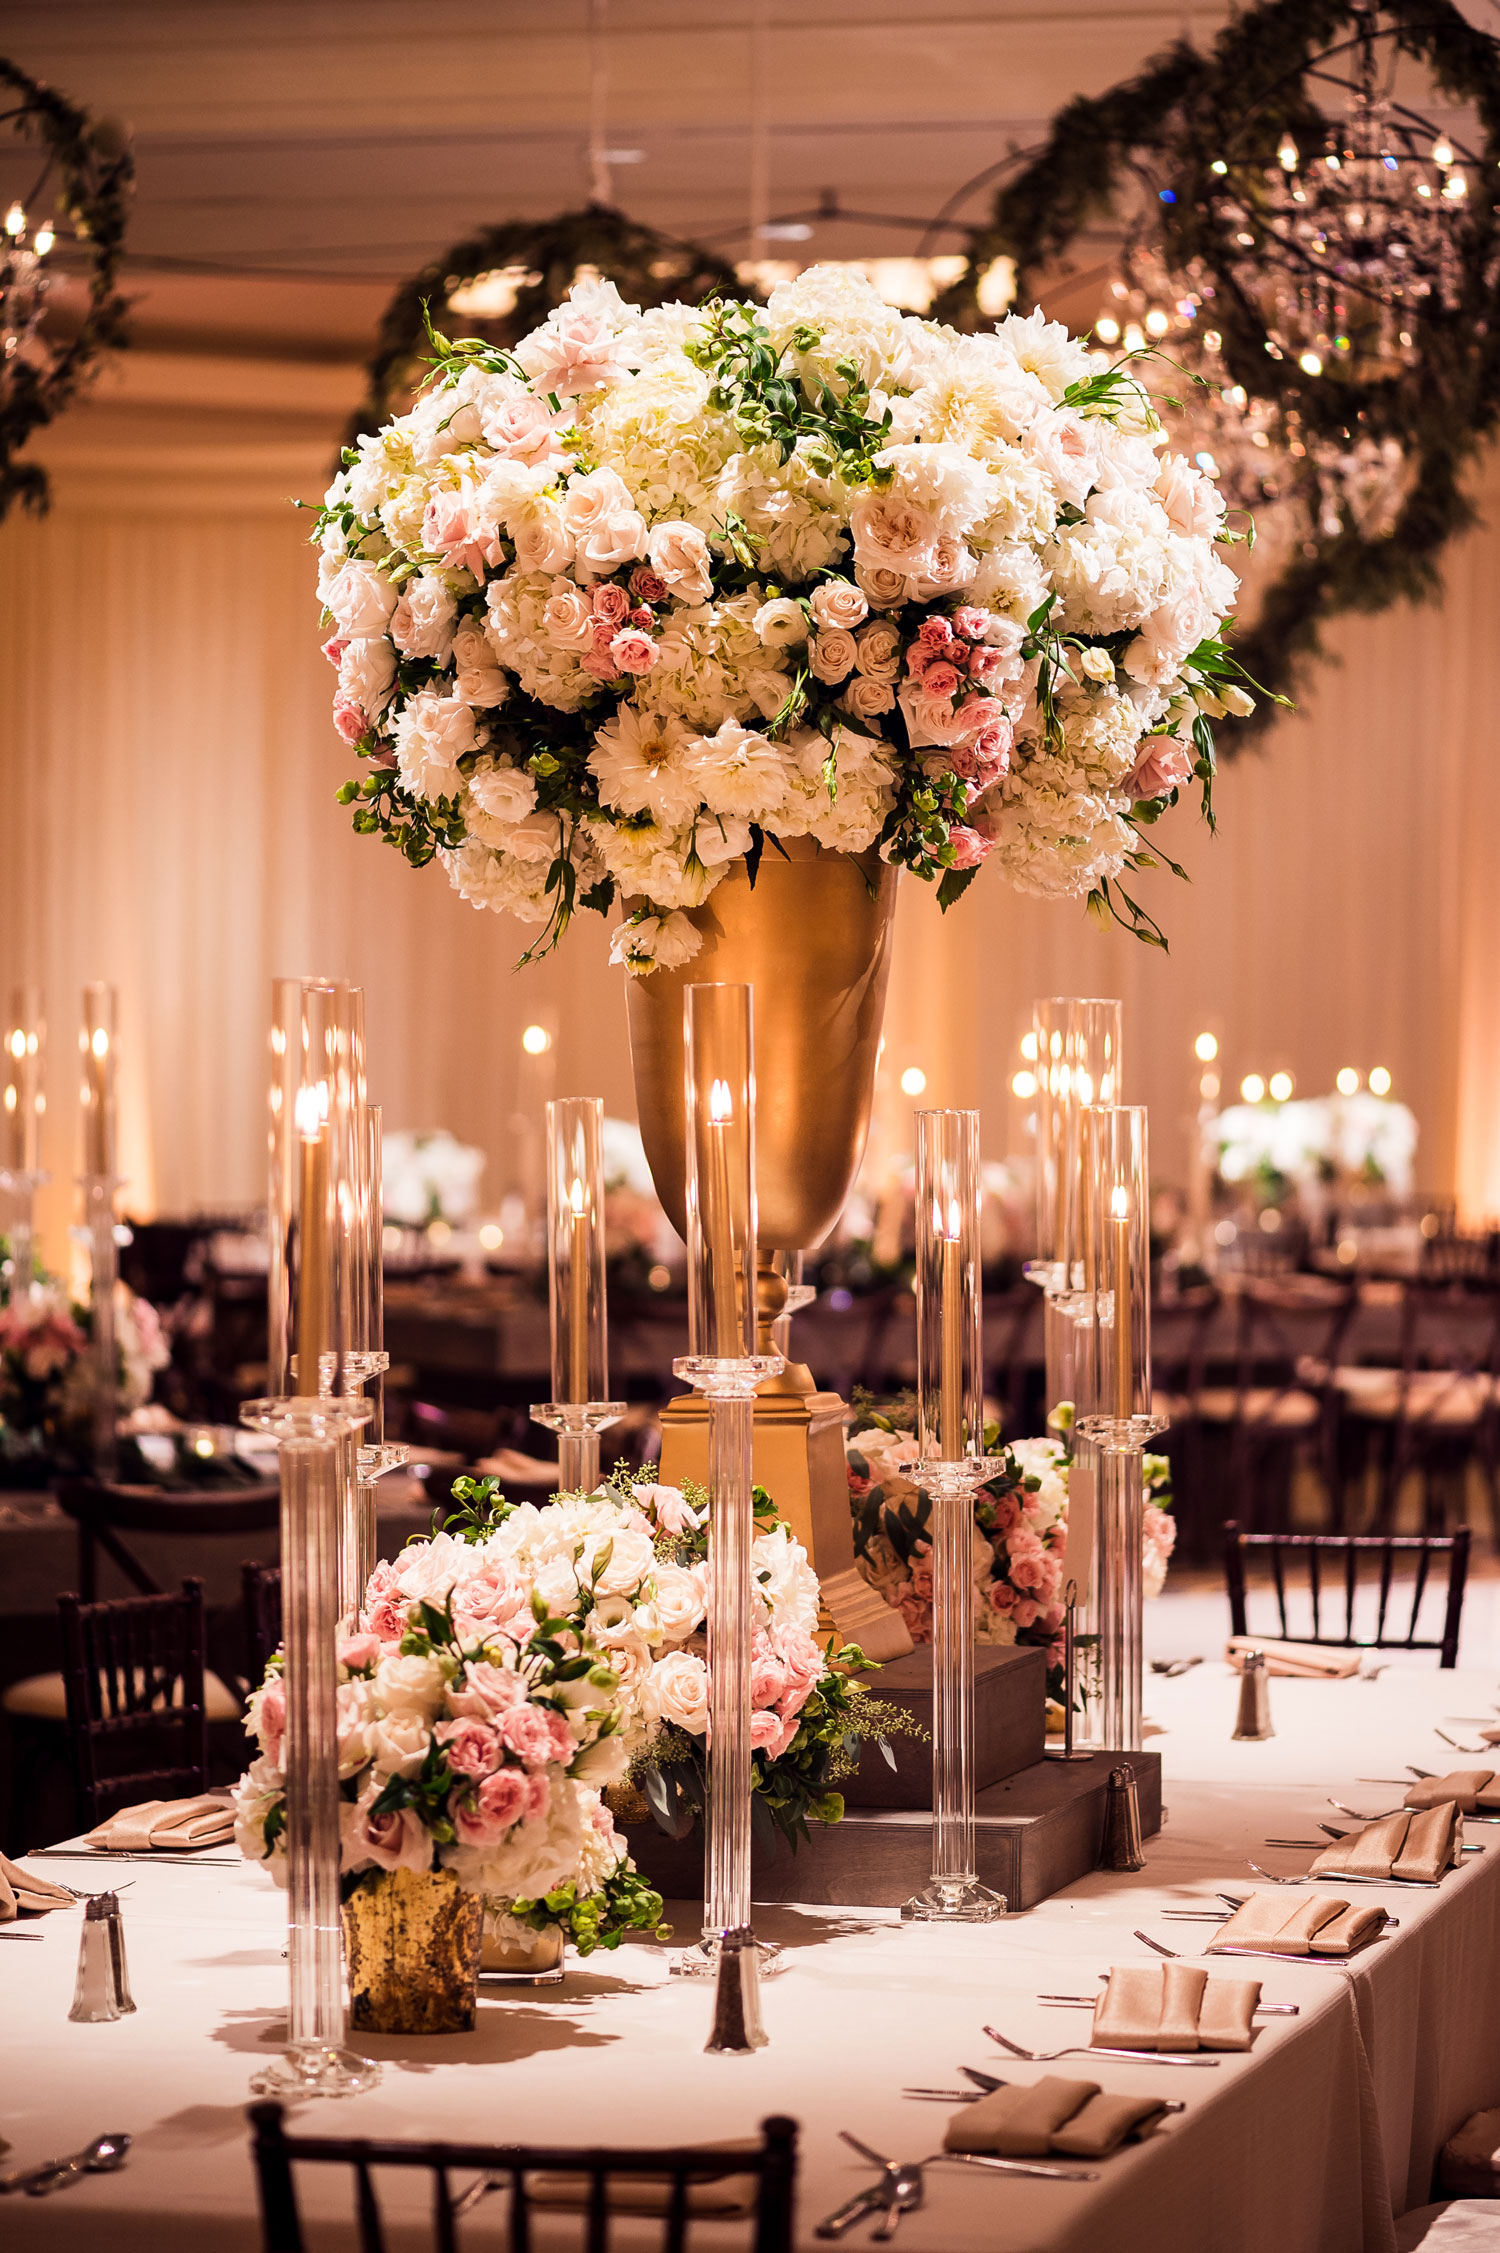 Outstanding Tall Flower Arrangement Ideas For Wedding Reception Download Free Architecture Designs Grimeyleaguecom